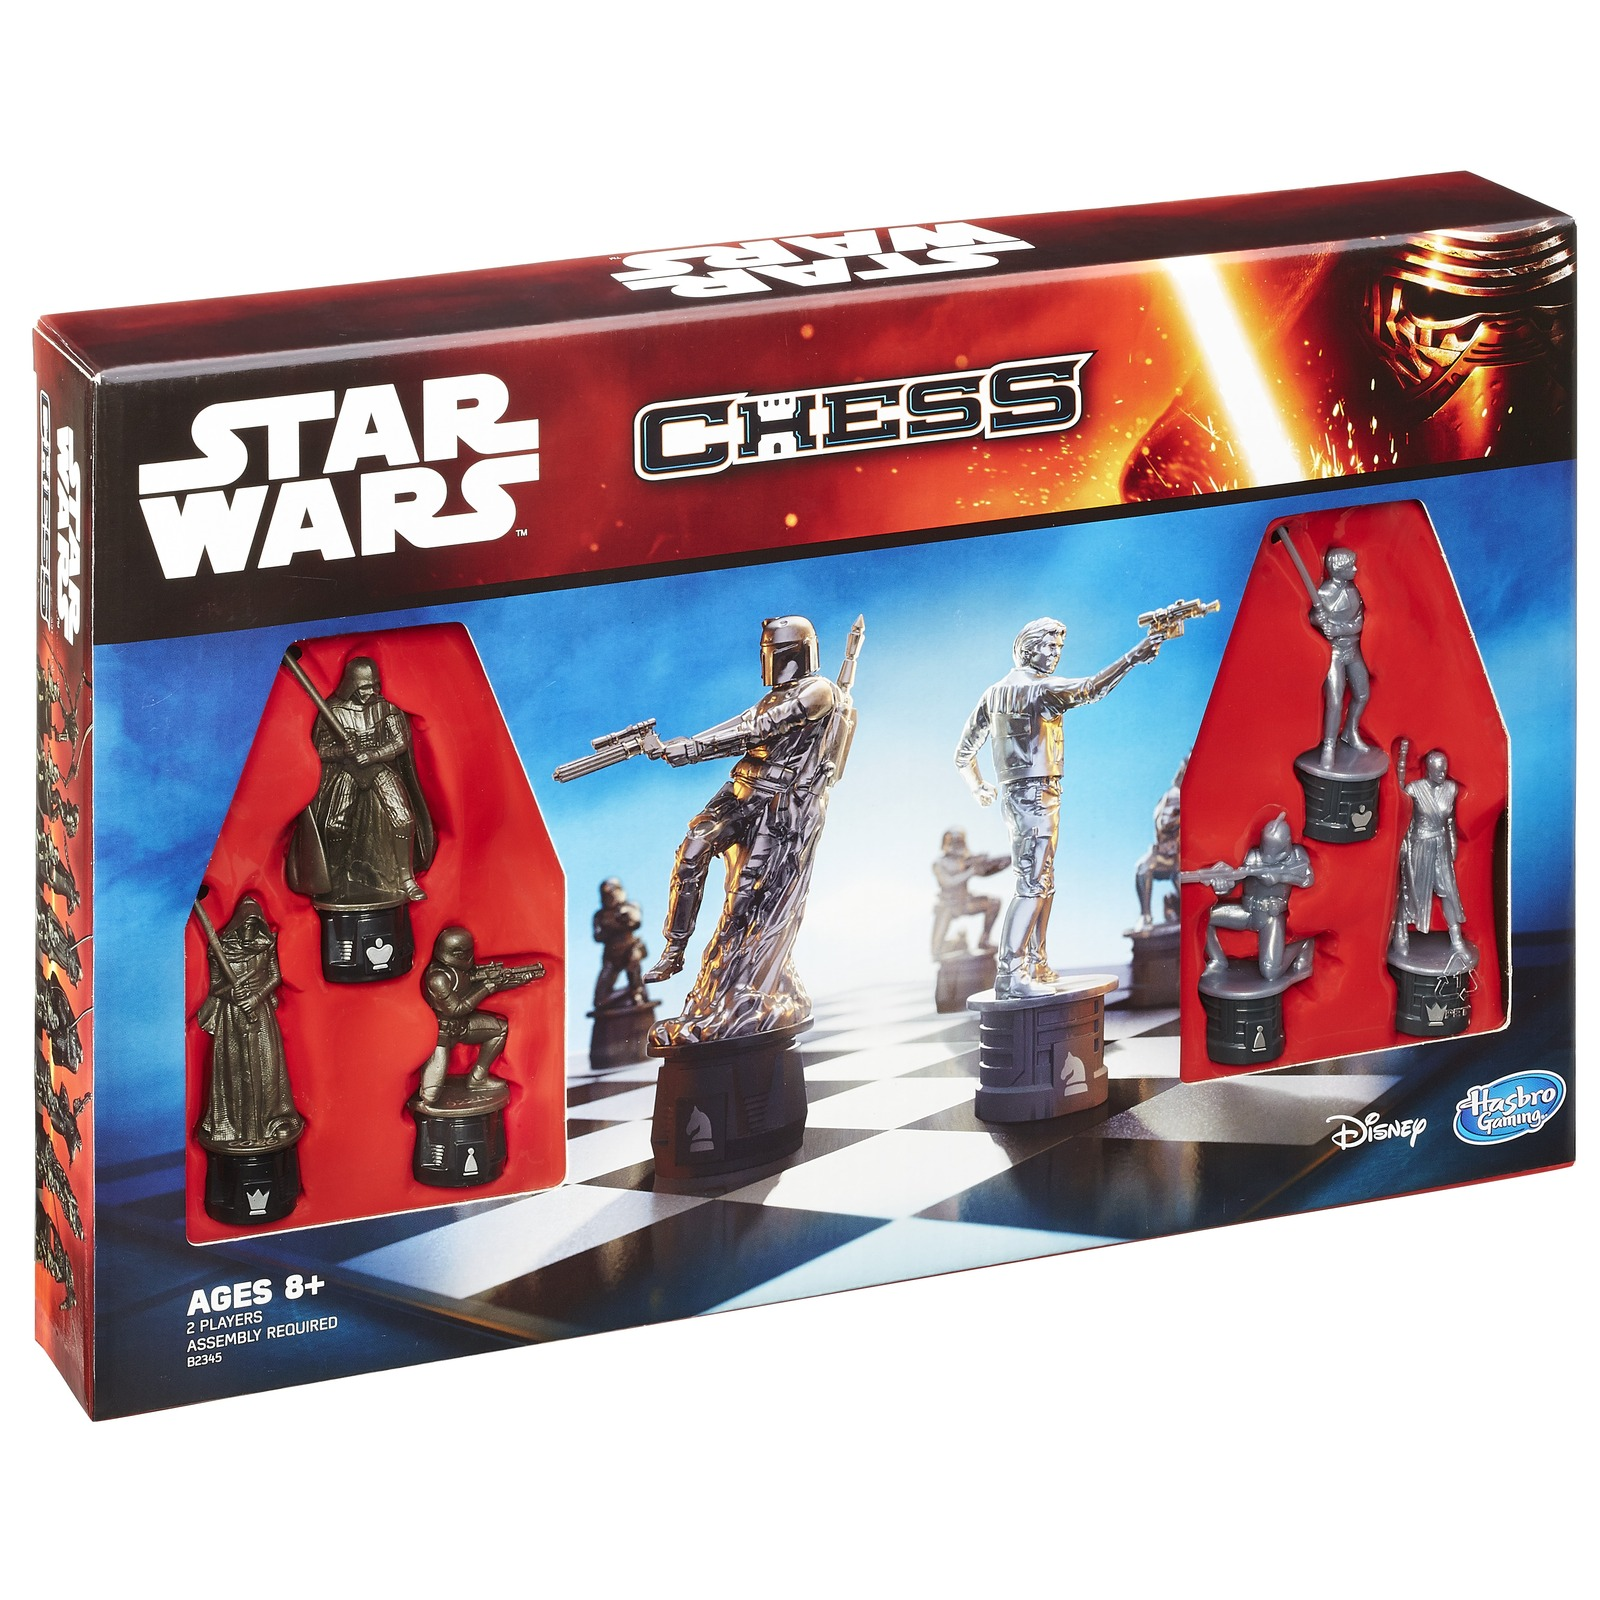 Star Wars Toy Game : Star wars chess game toy at mighty ape nz